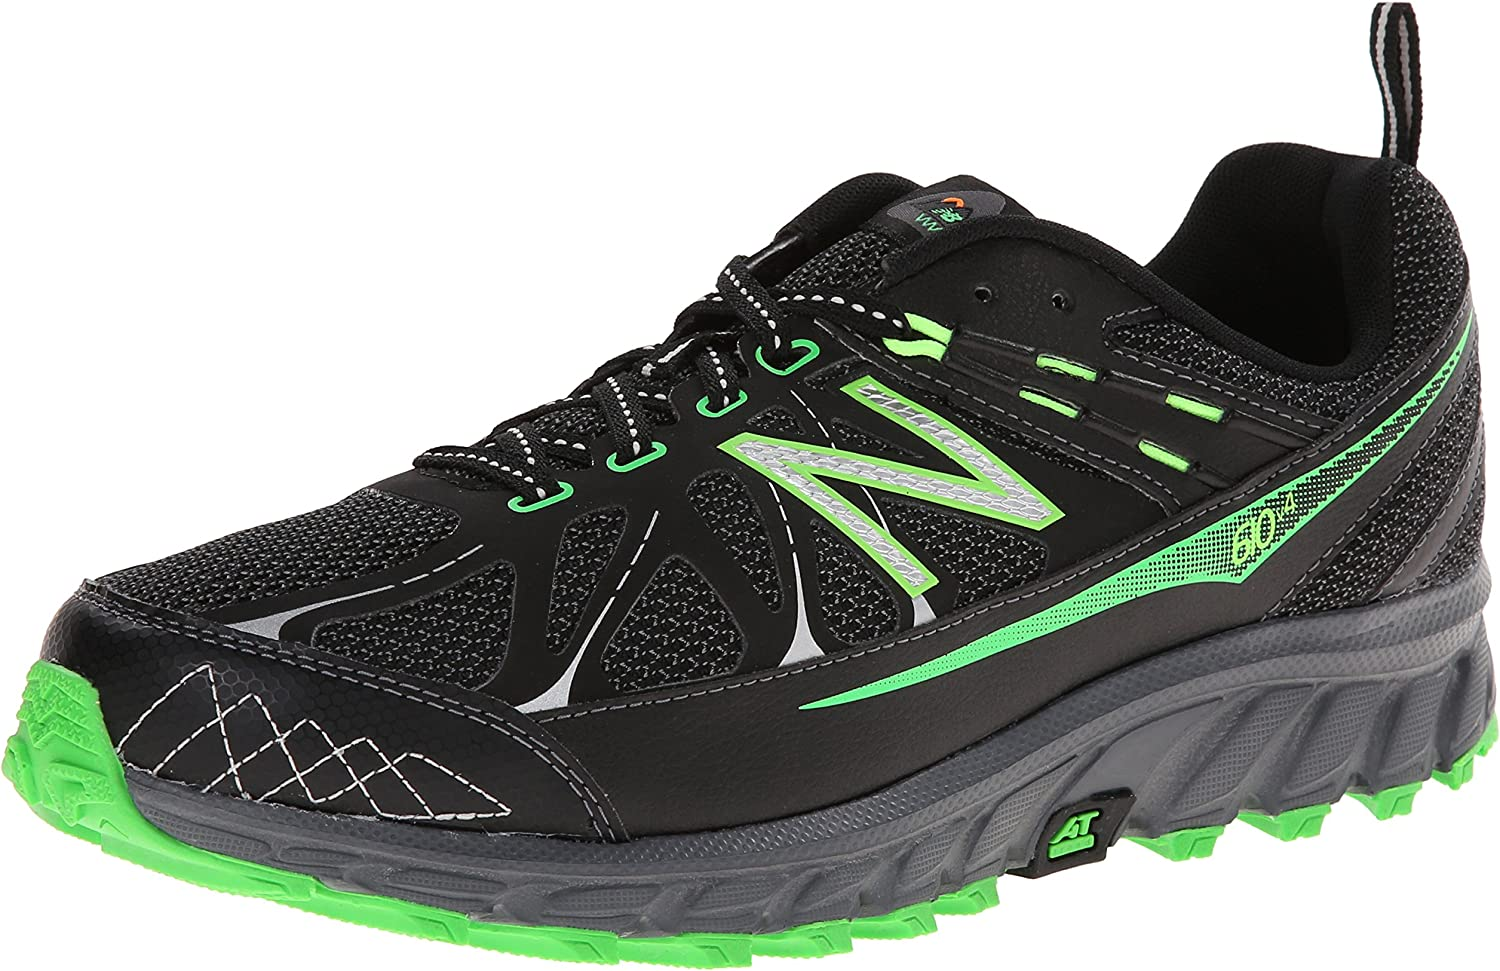 New Balance Men s MT610V4 Trail-Running Shoe